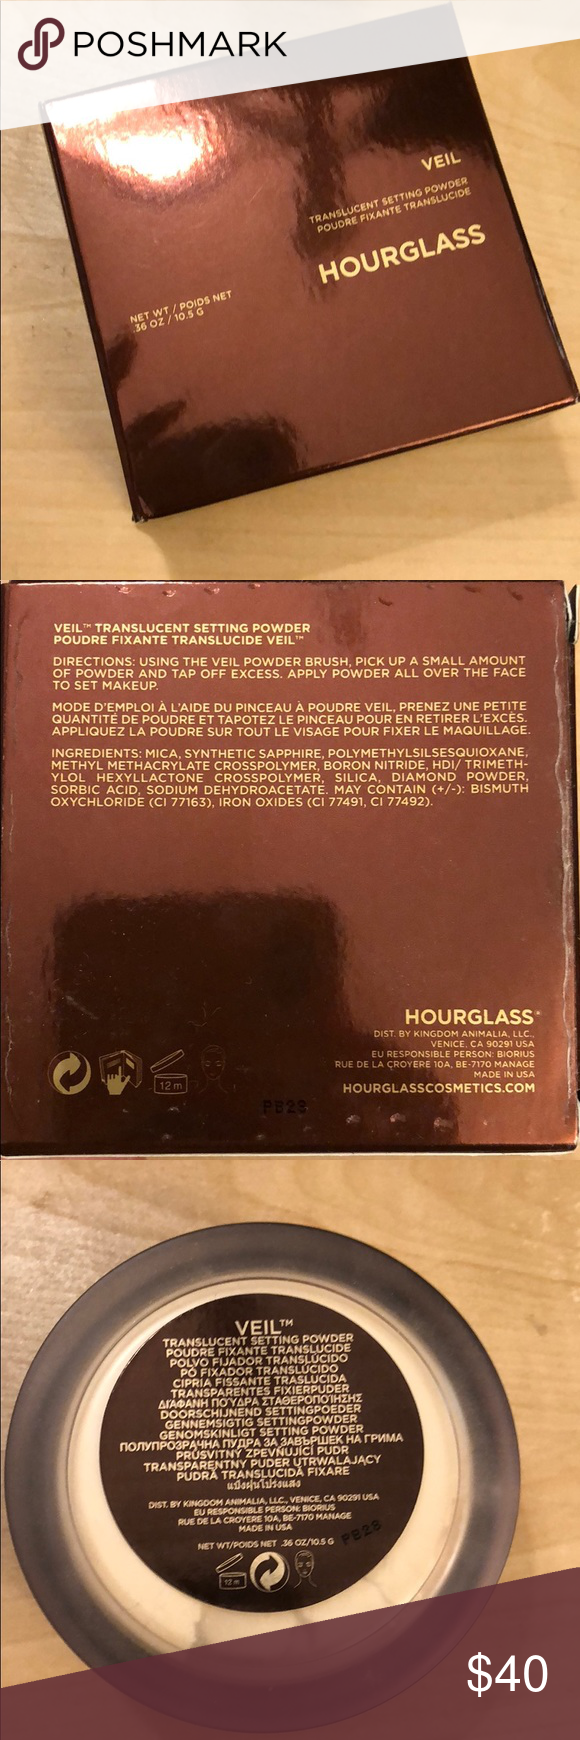 Hourglass Veil Translucent Setting Powder Bnib The Design On This Is Very Unique The Top Has A Stopper So U C Hourglass Makeup Setting Powder Finishing Powder